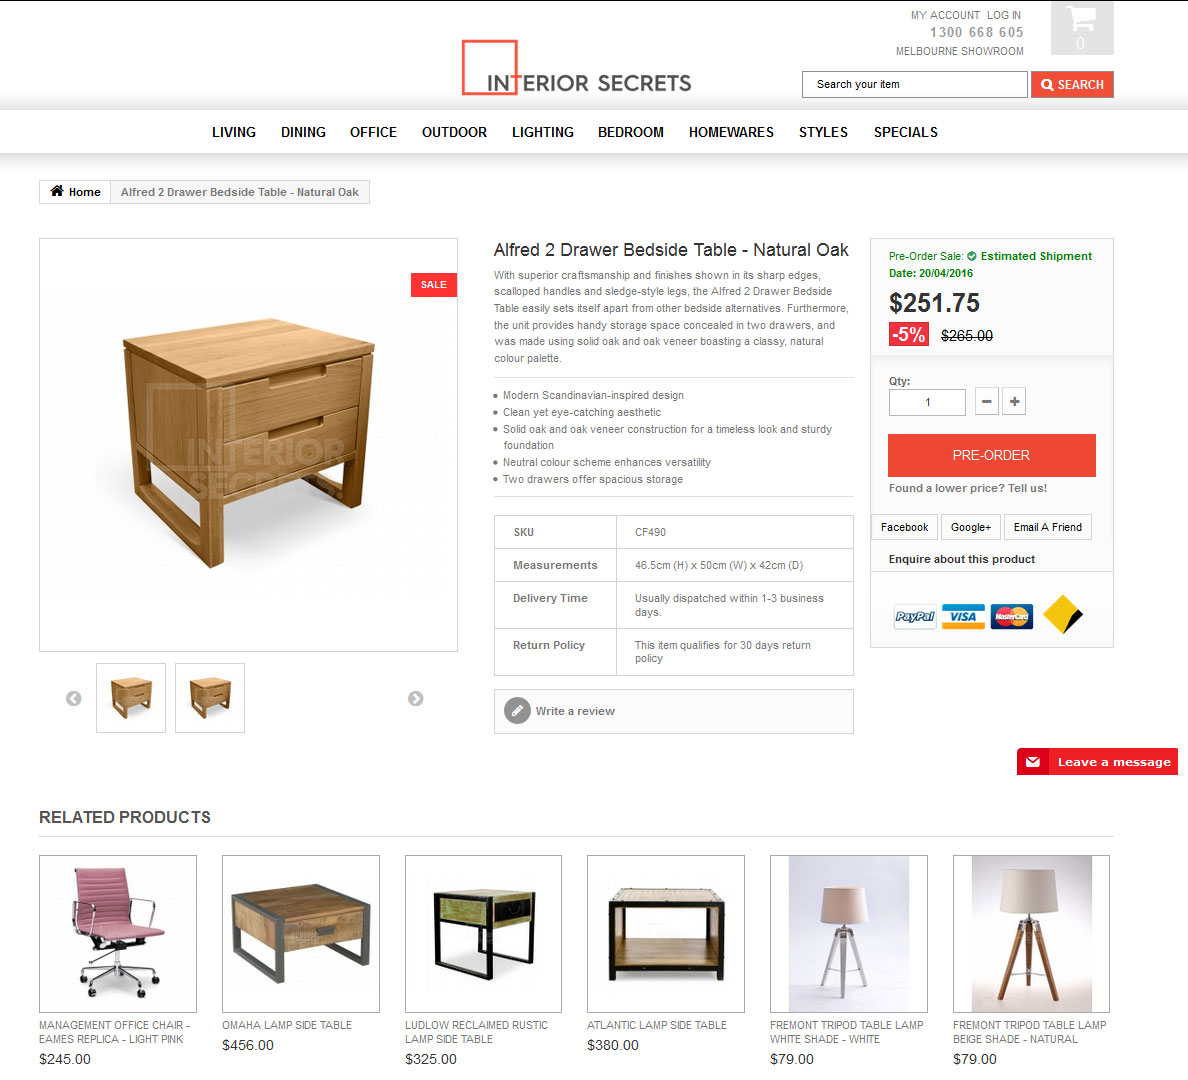 Mobile-Friendly Ecommerce Site for Furniture Retailer